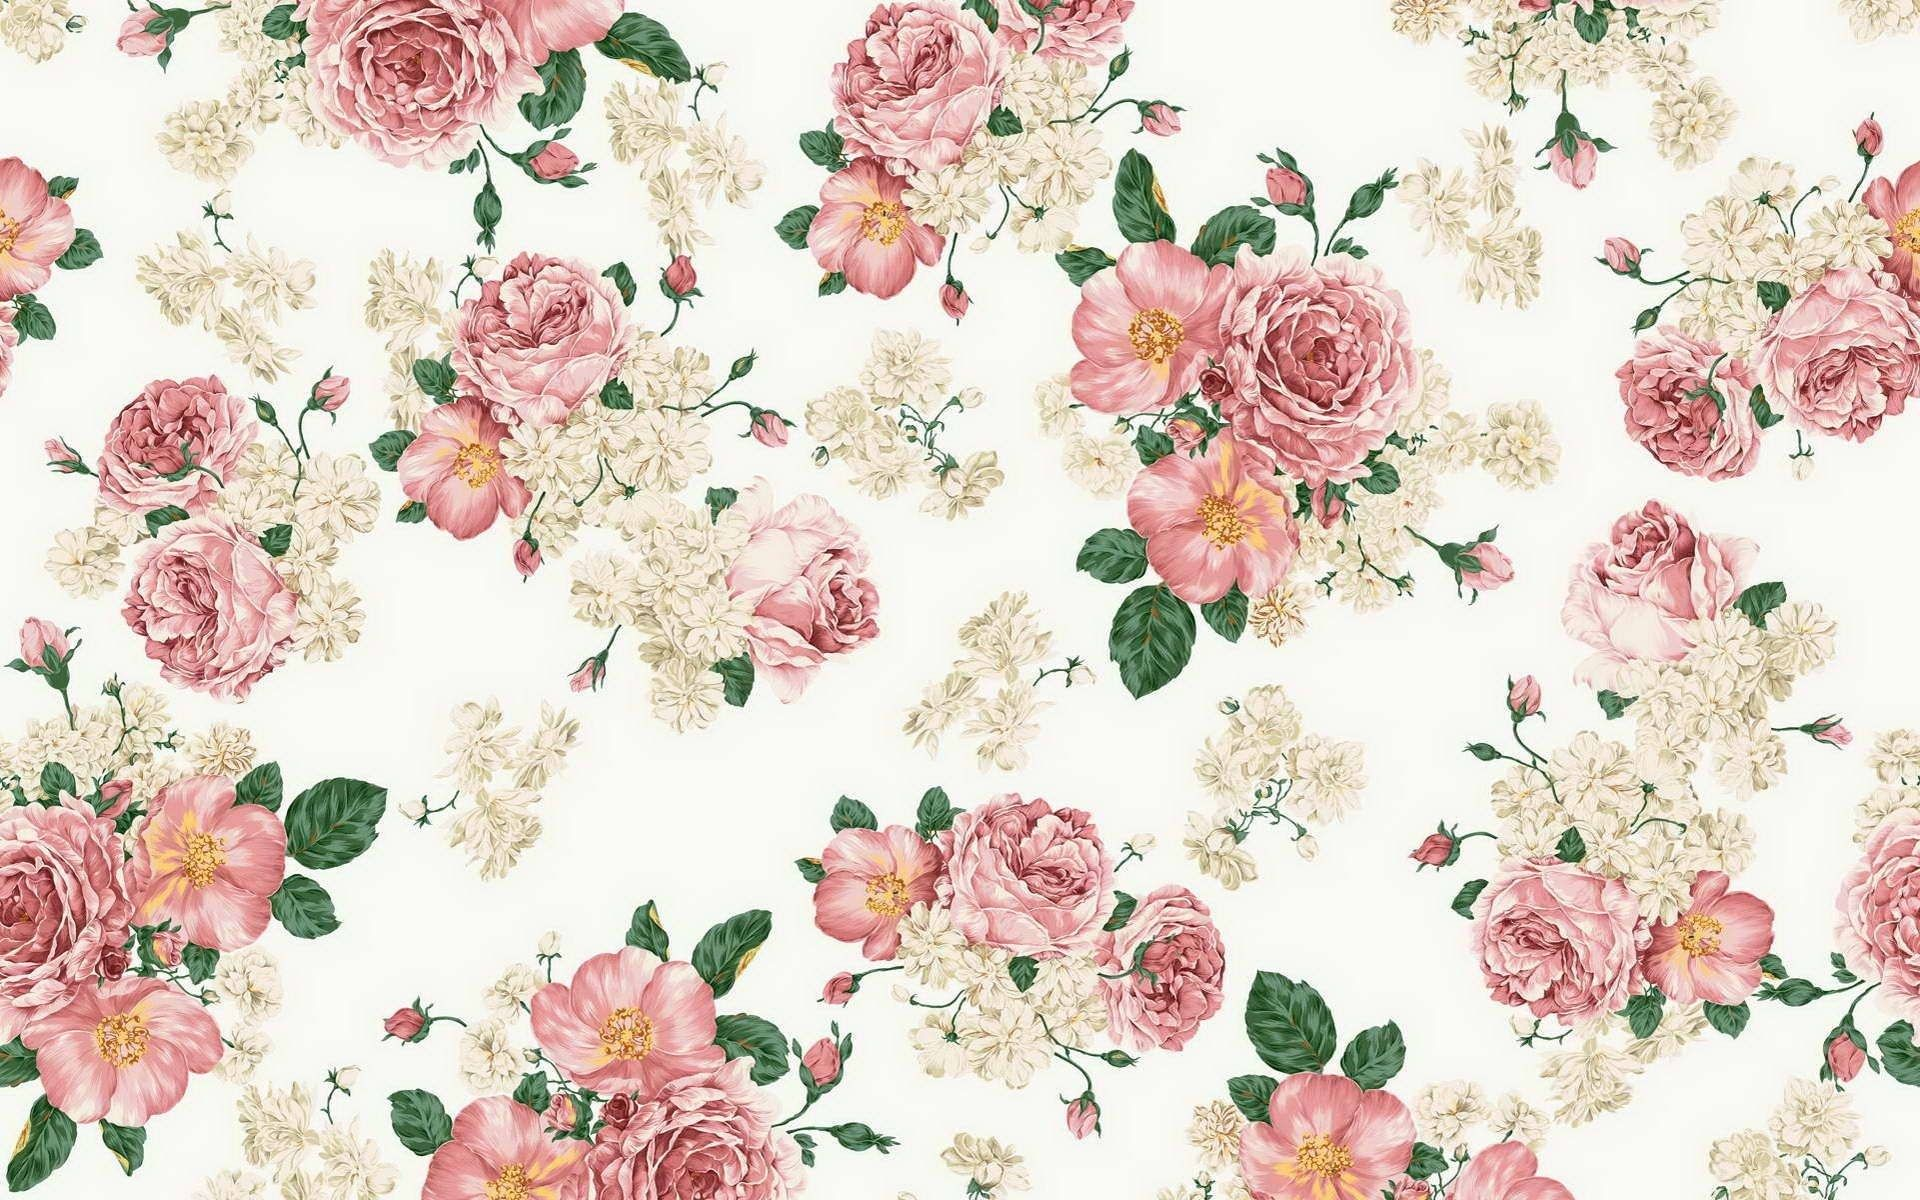 Cute Aesthetic Plant Wallpapers Top Free Cute Aesthetic Plant